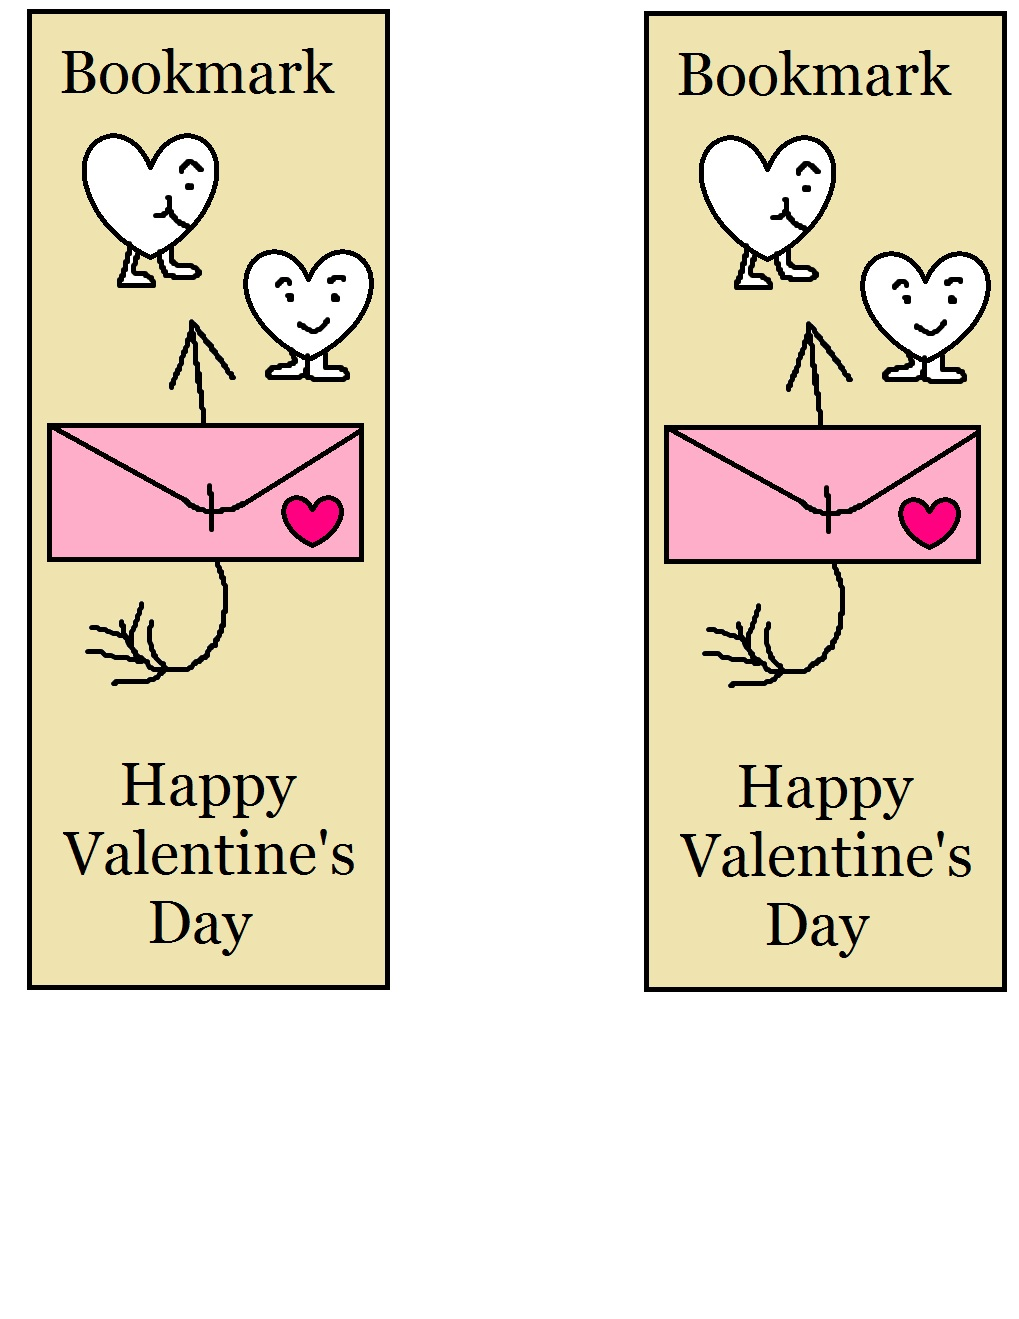 Valentine bookmark to color - Valentine Bookmarks